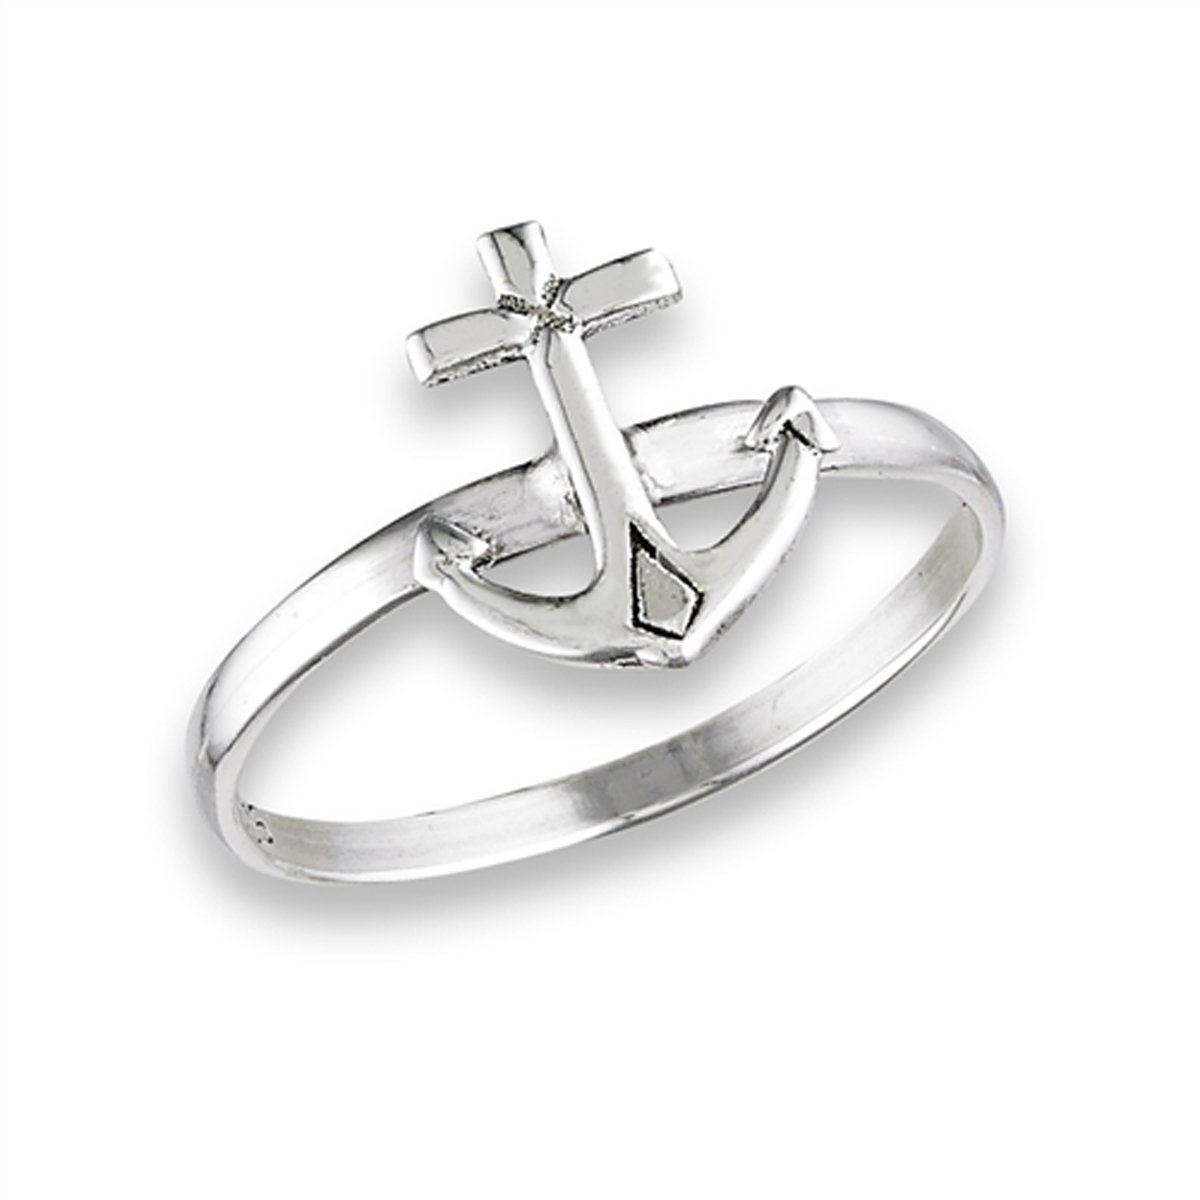 Prime Jewelry Collection Sterling Silver Women's Anchor Ring (Sizes 3-8) (Ring Size 7)